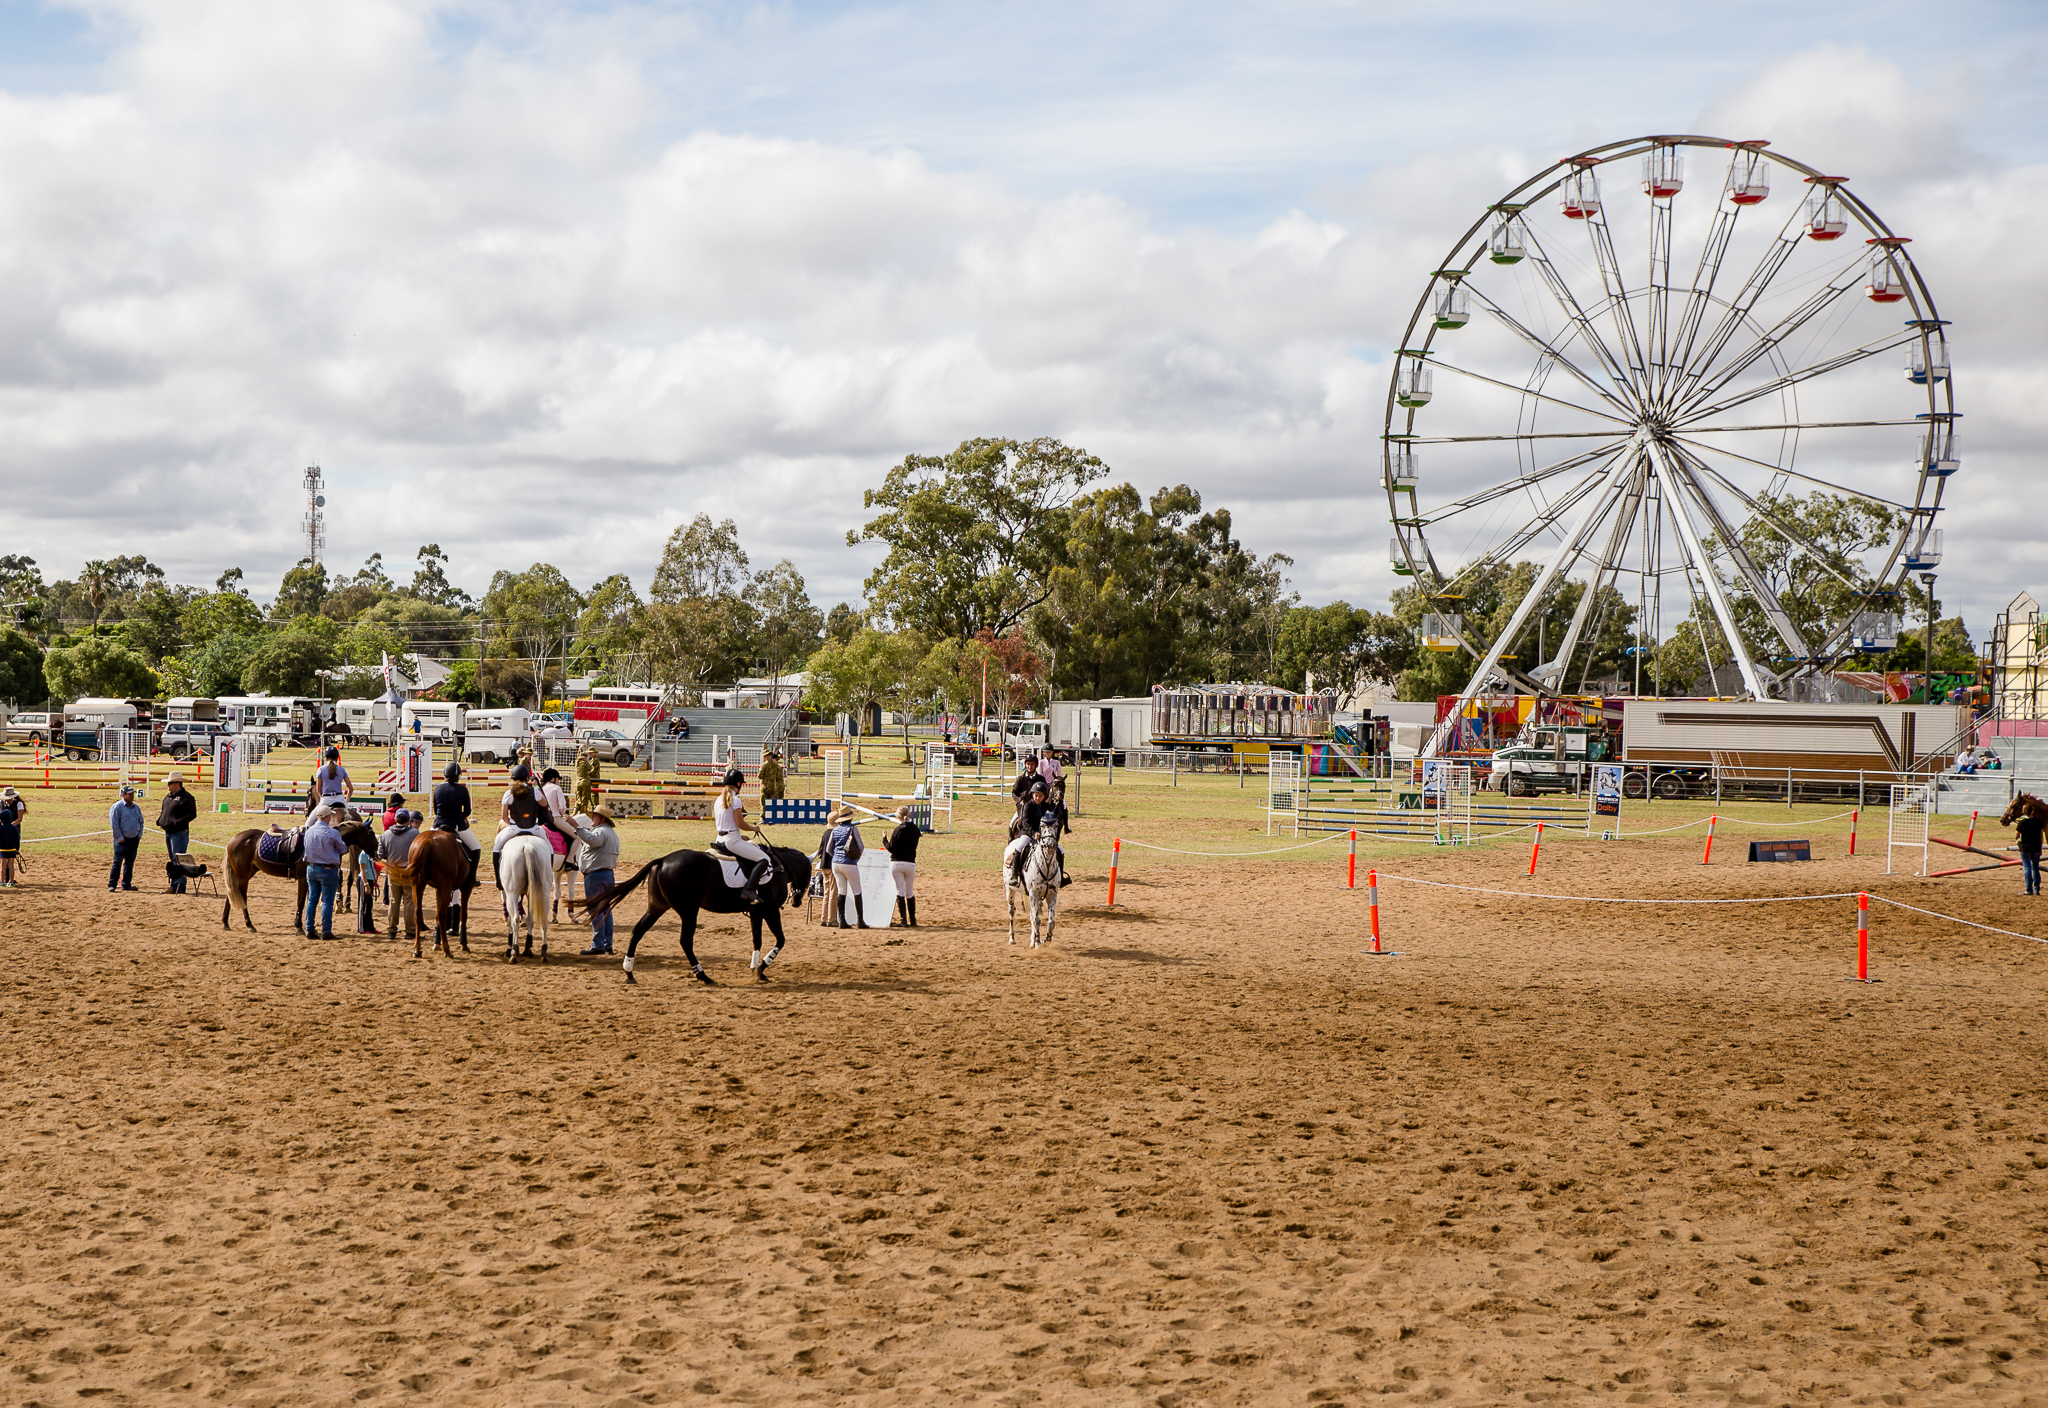 Things to do in Dalby, Dalby showgrounds